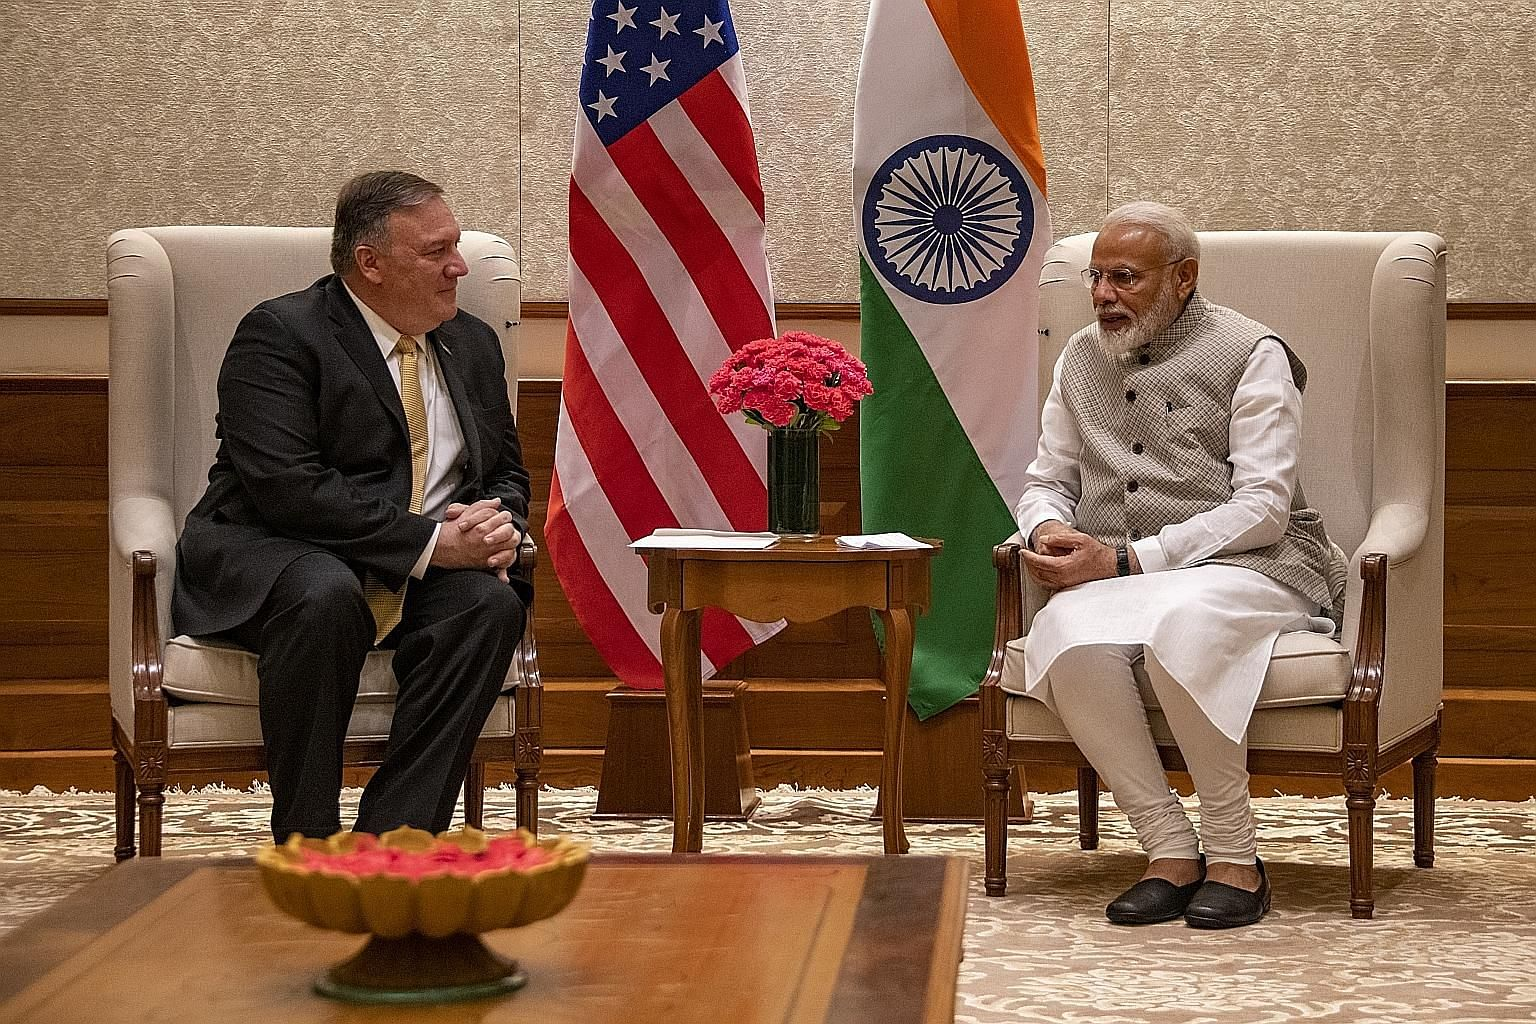 US Secretary of State Mike Pompeo meeting Indian Prime Minister Narendra Modi in New Delhi yesterday. Mr Pompeo is the first high-level US official to visit India after Mr Modi's re-election.